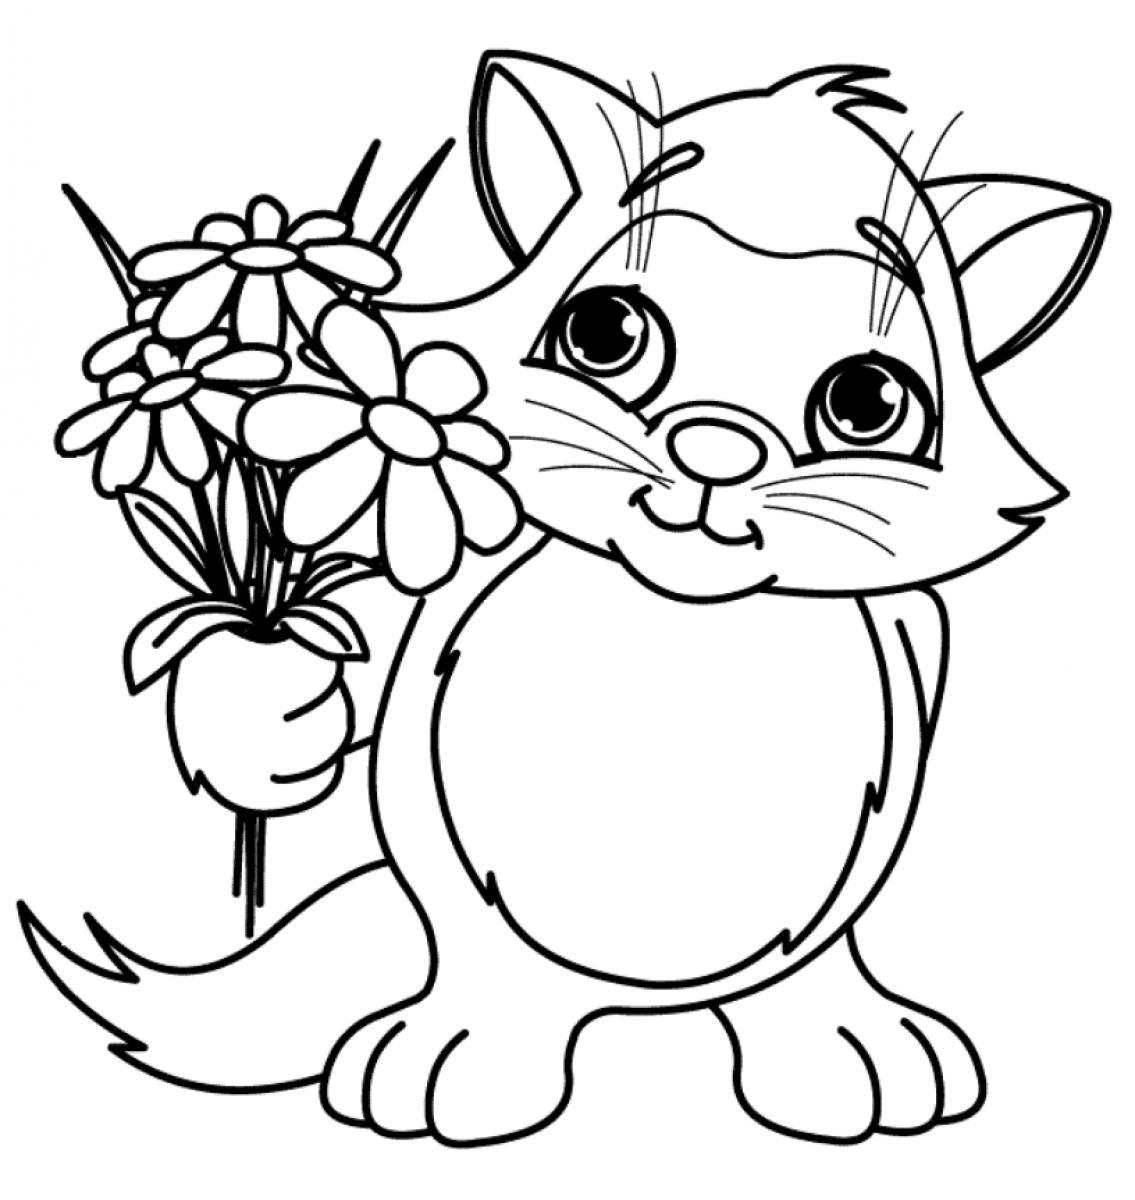 flower coloring page beautiful printable flowers coloring pages flower coloring page